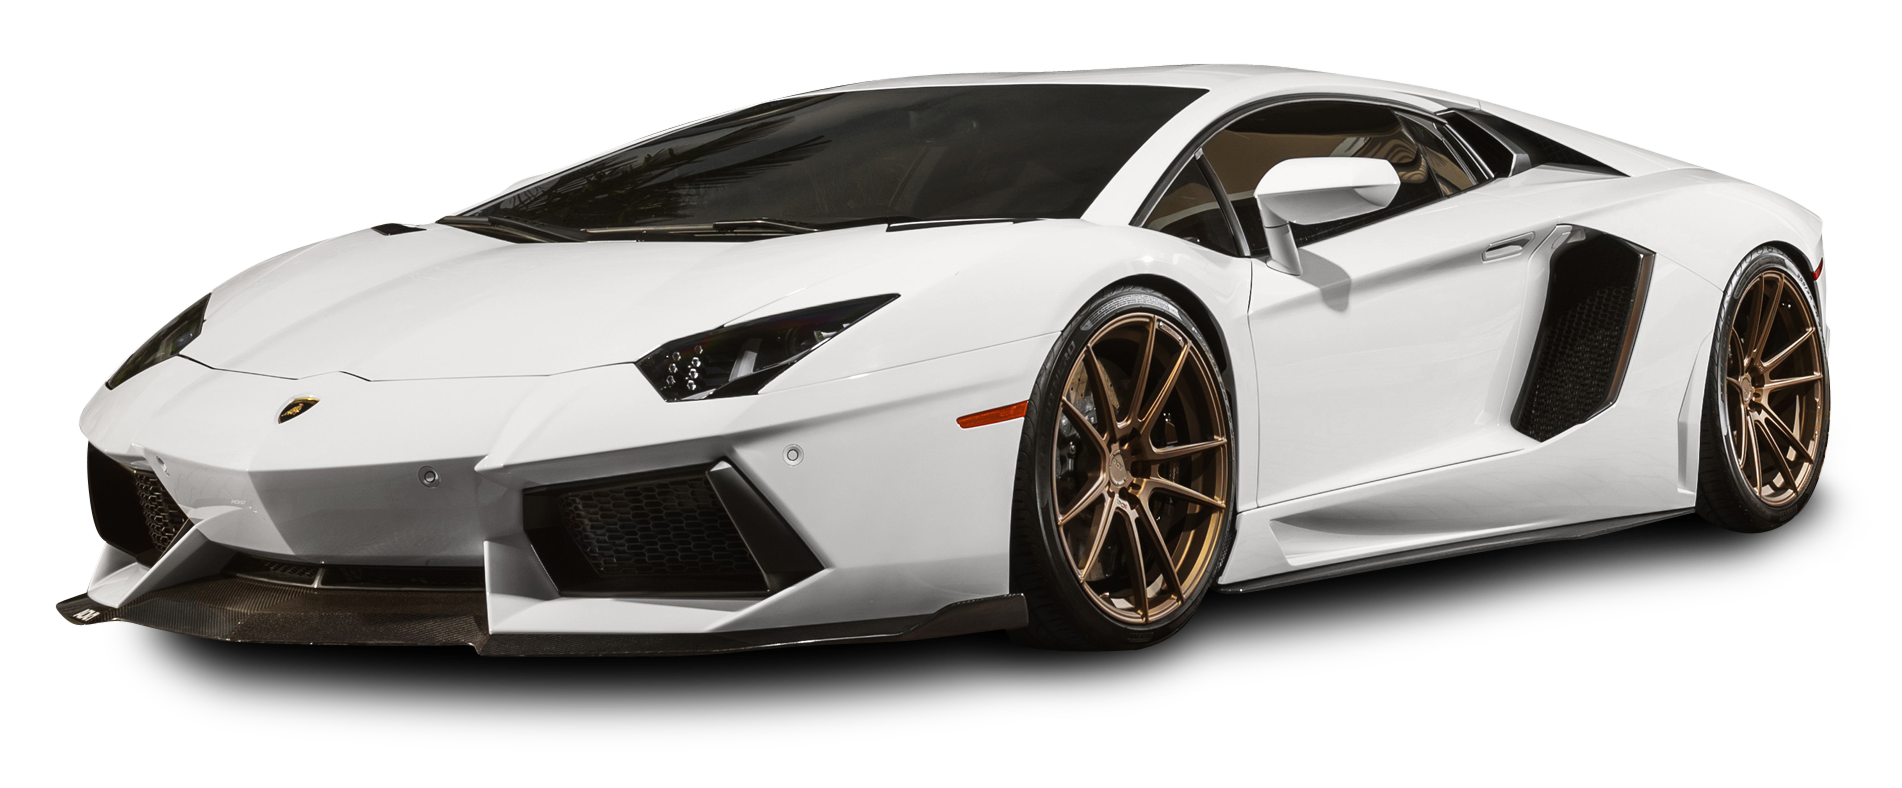 Lamborghini Car Png 39055 Free Icons And Png Backgrounds